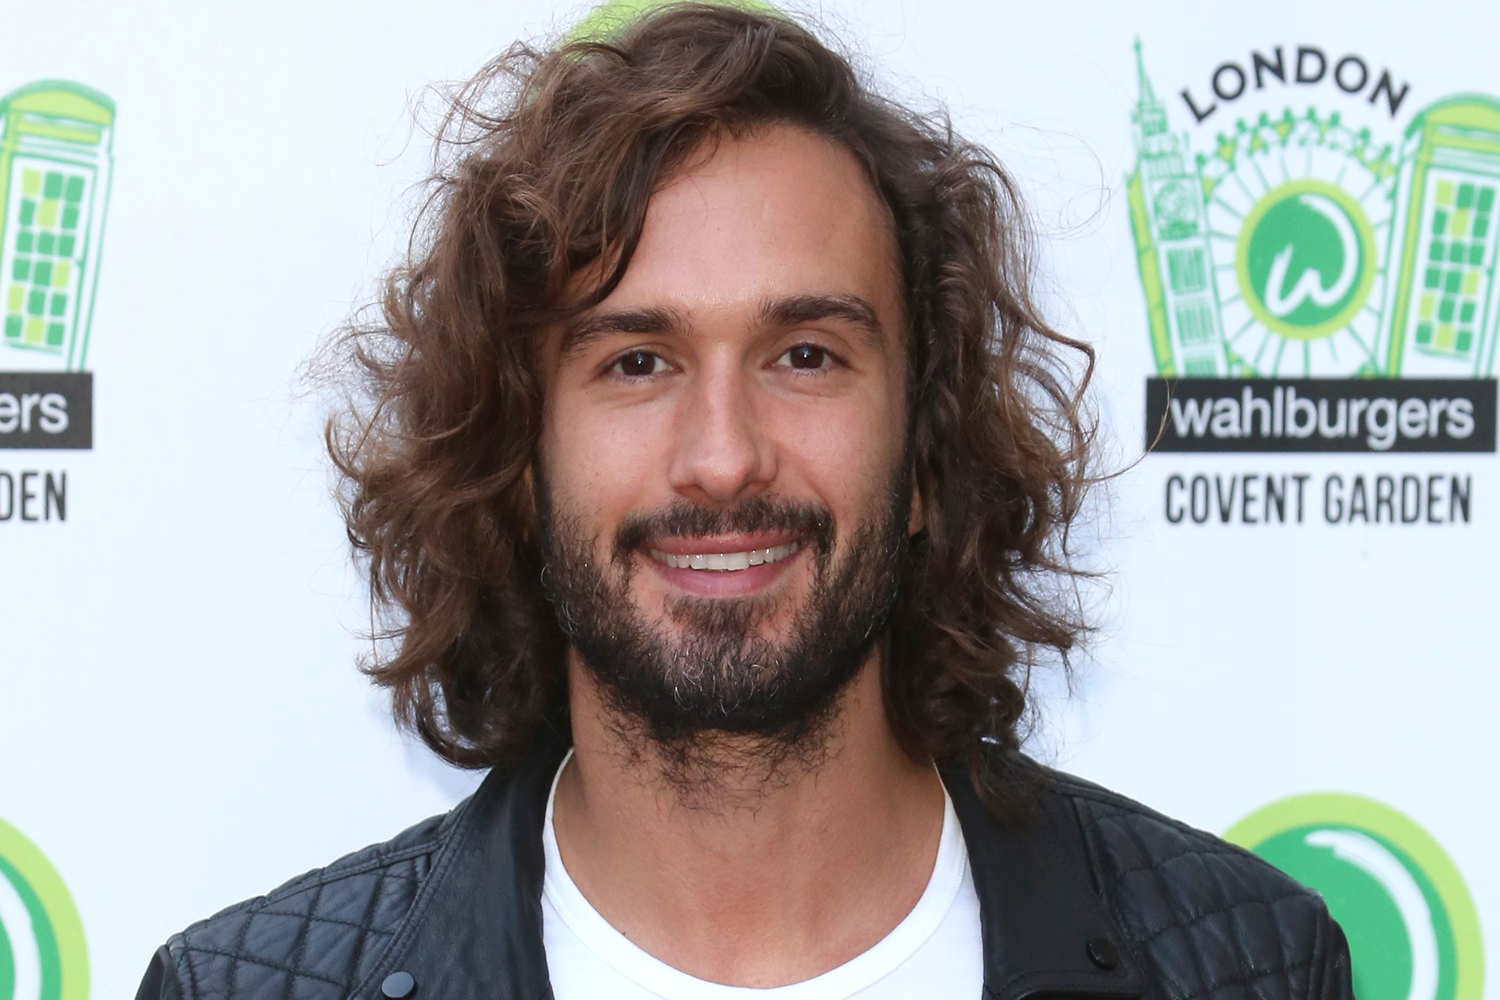 Joe Wicks Gives Updates on Hand Injury From Hospital